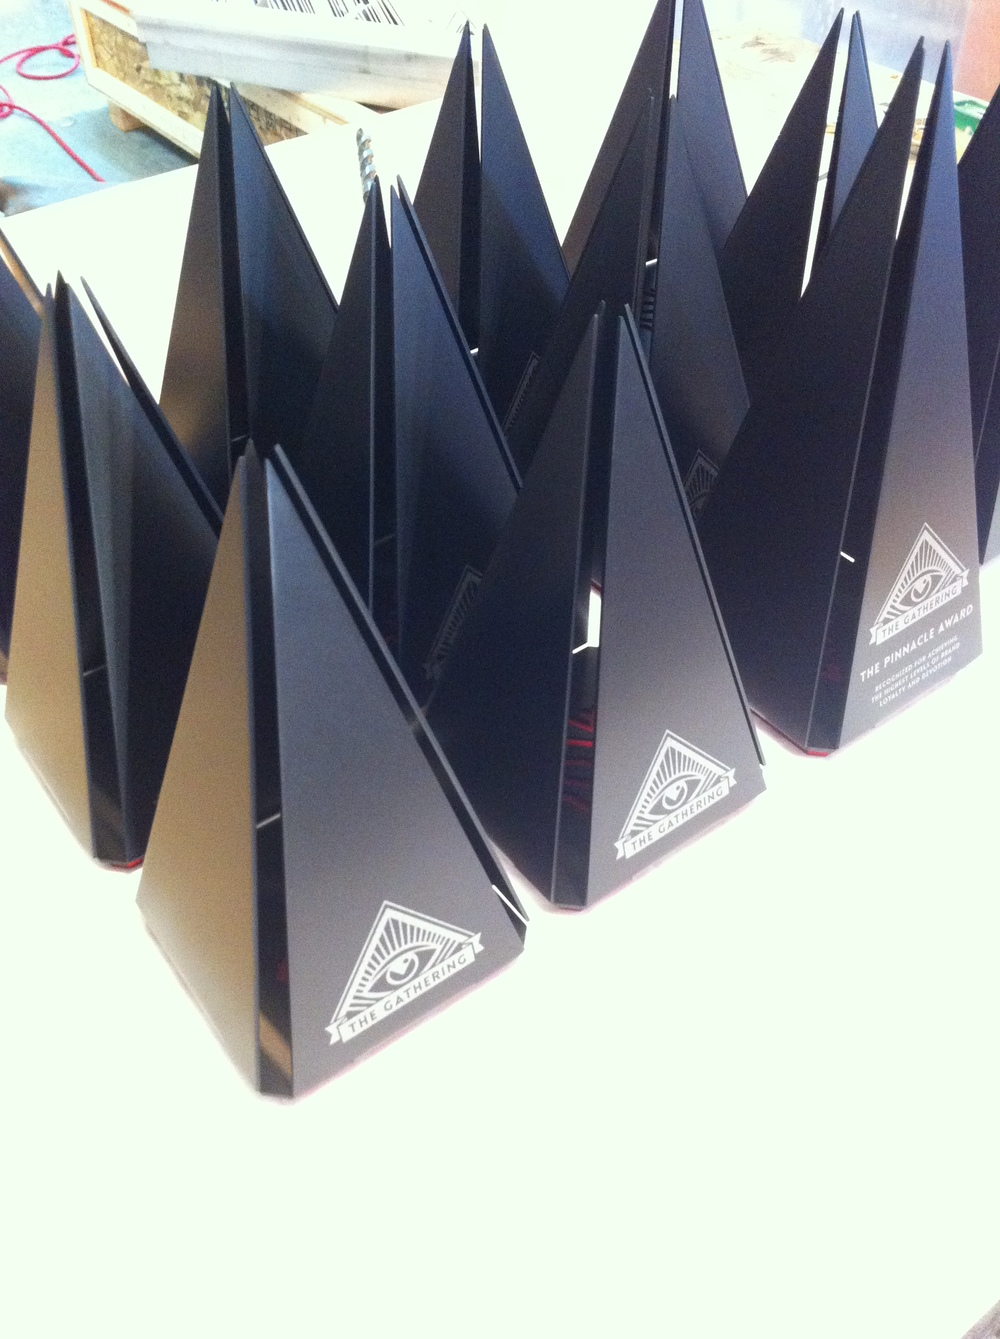 CULT Awards The Gathering custom trophy unique award modern pyramid design